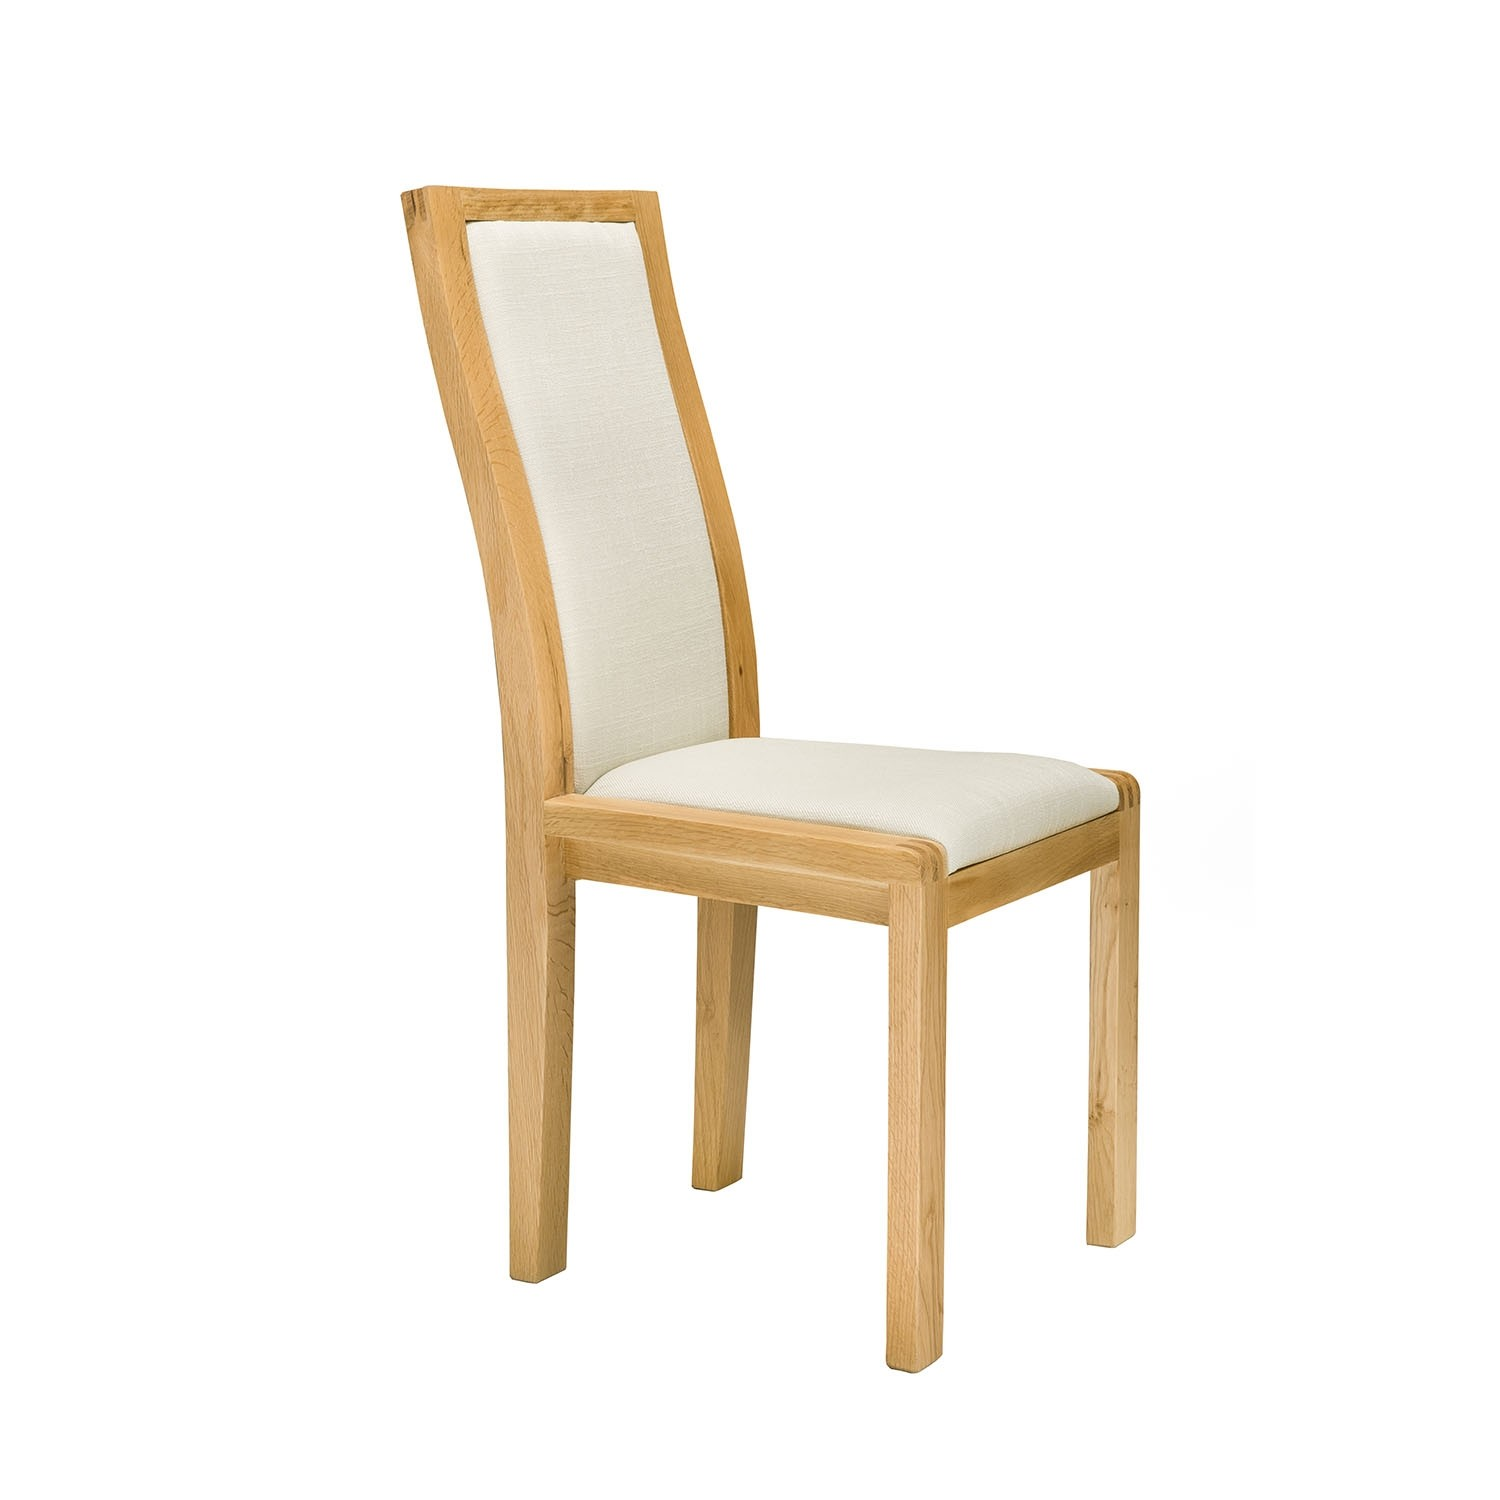 cream upholstered dining chairs uk can you paint a faux leather chair ercol bosco leekes